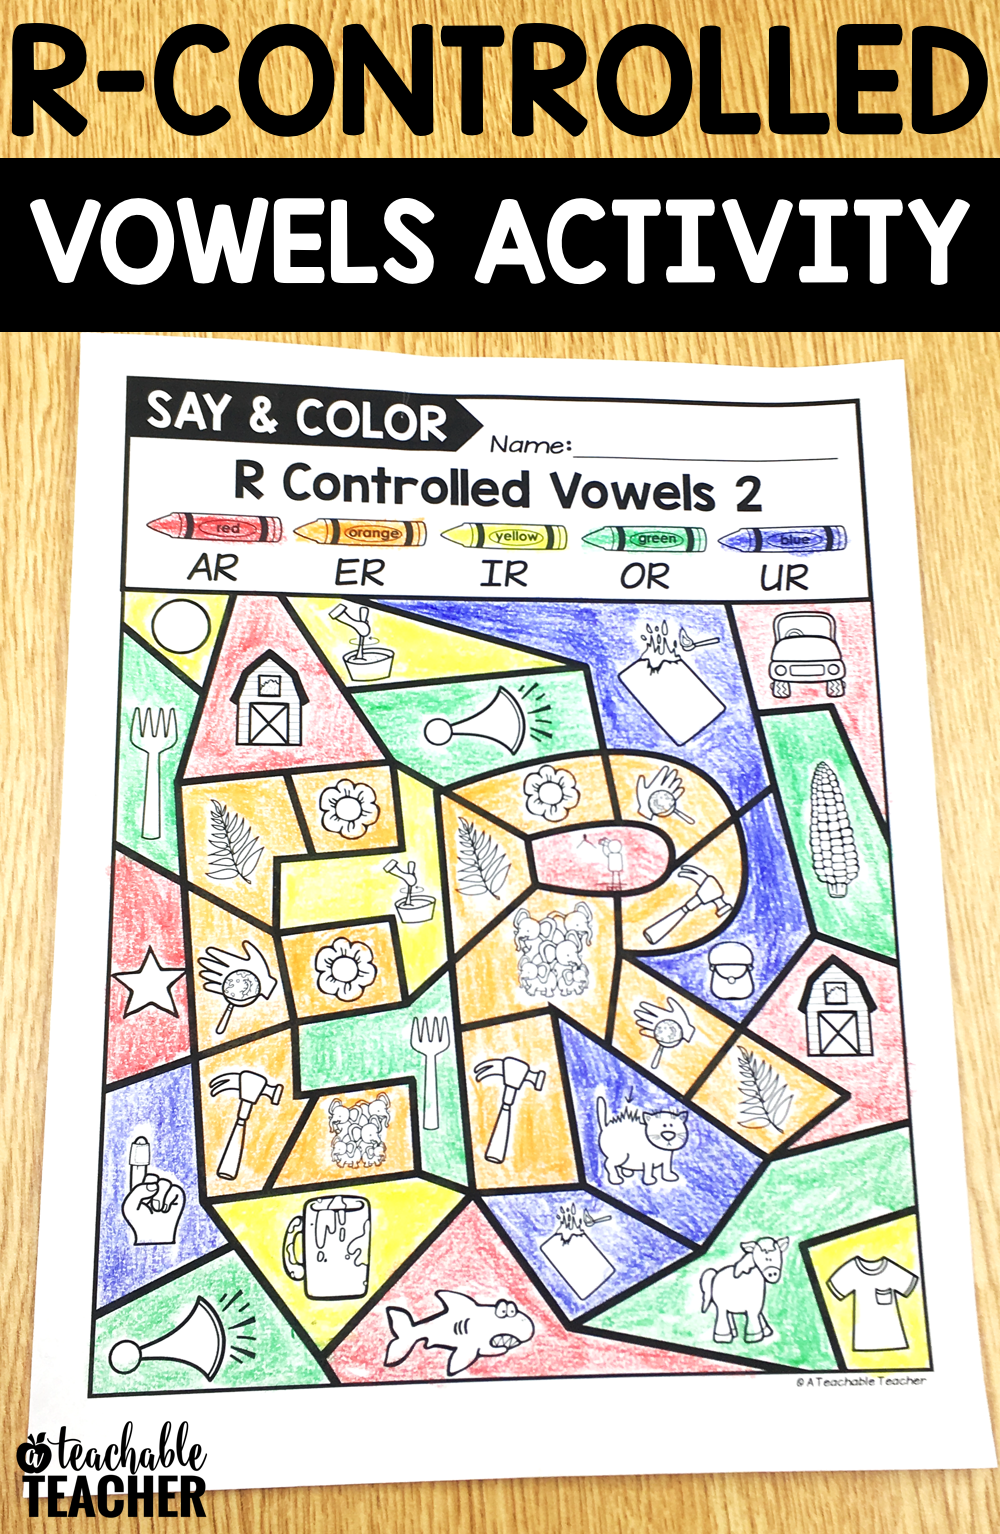 hight resolution of R-controlled vowels worksheets. Say and Color r-controlled vowels  printables incorpora…   Vowel activities